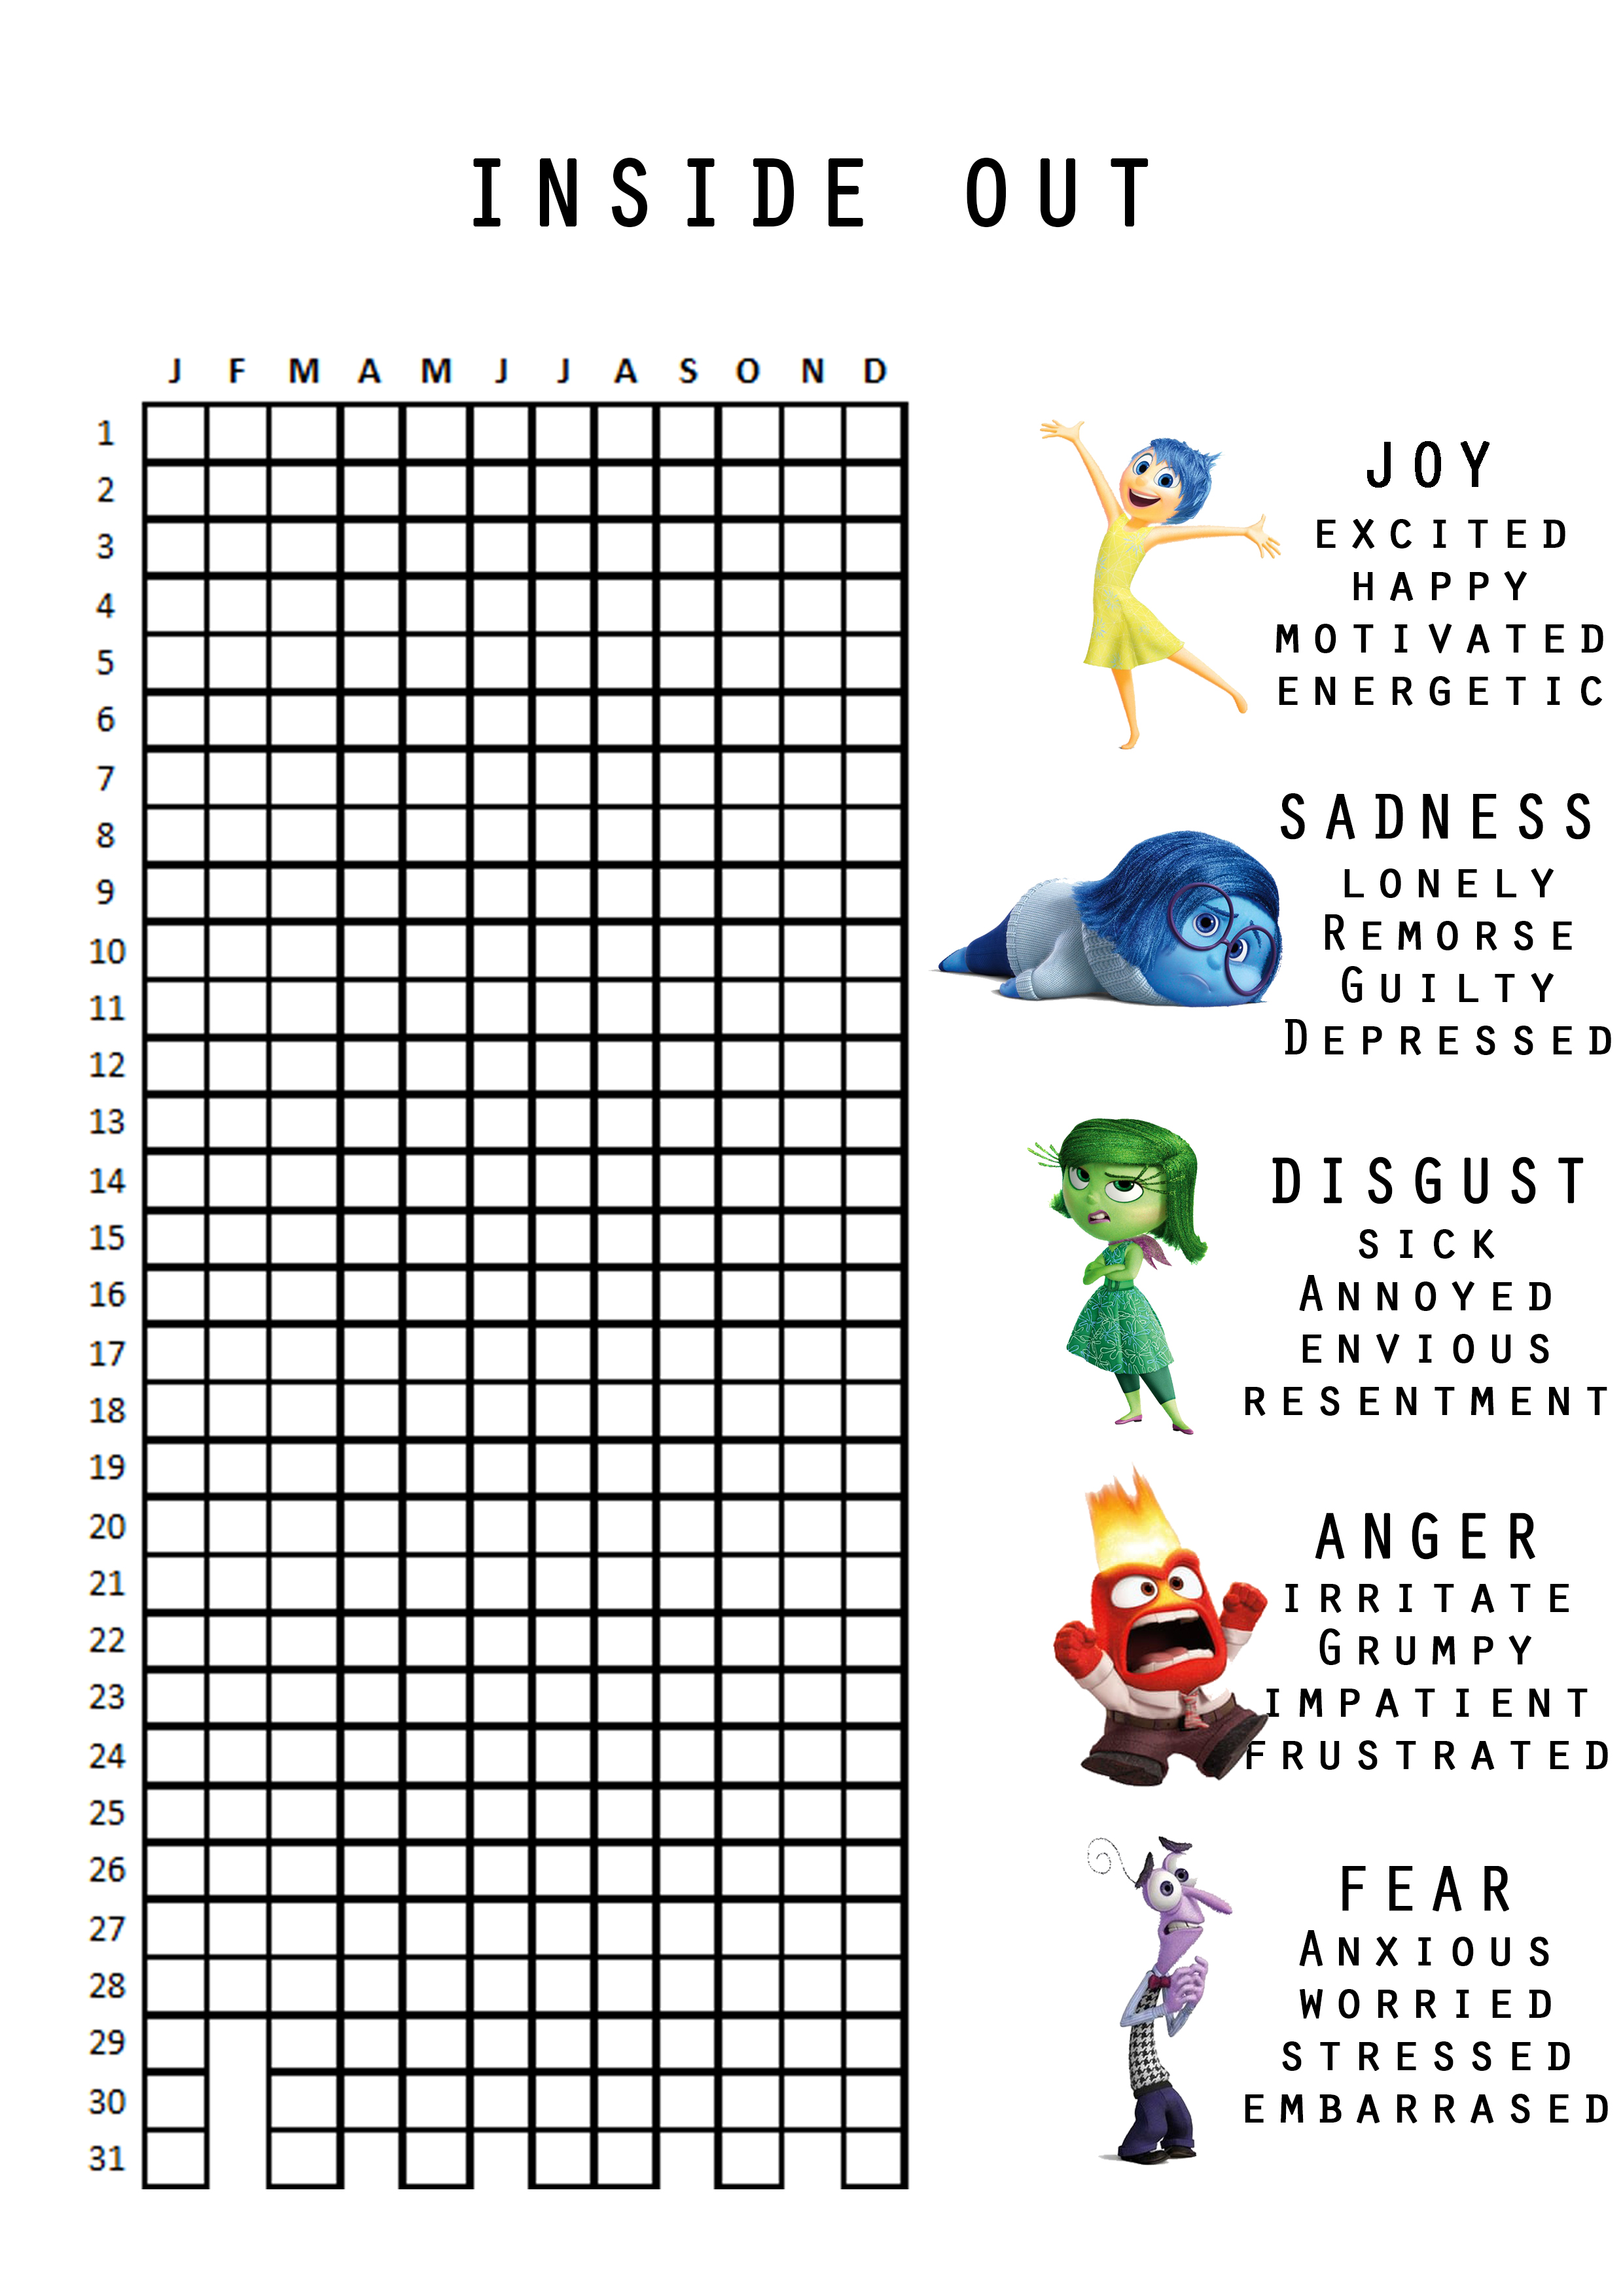 image about Mood Tracker Printable named In just Out: Annually Temper Tracker